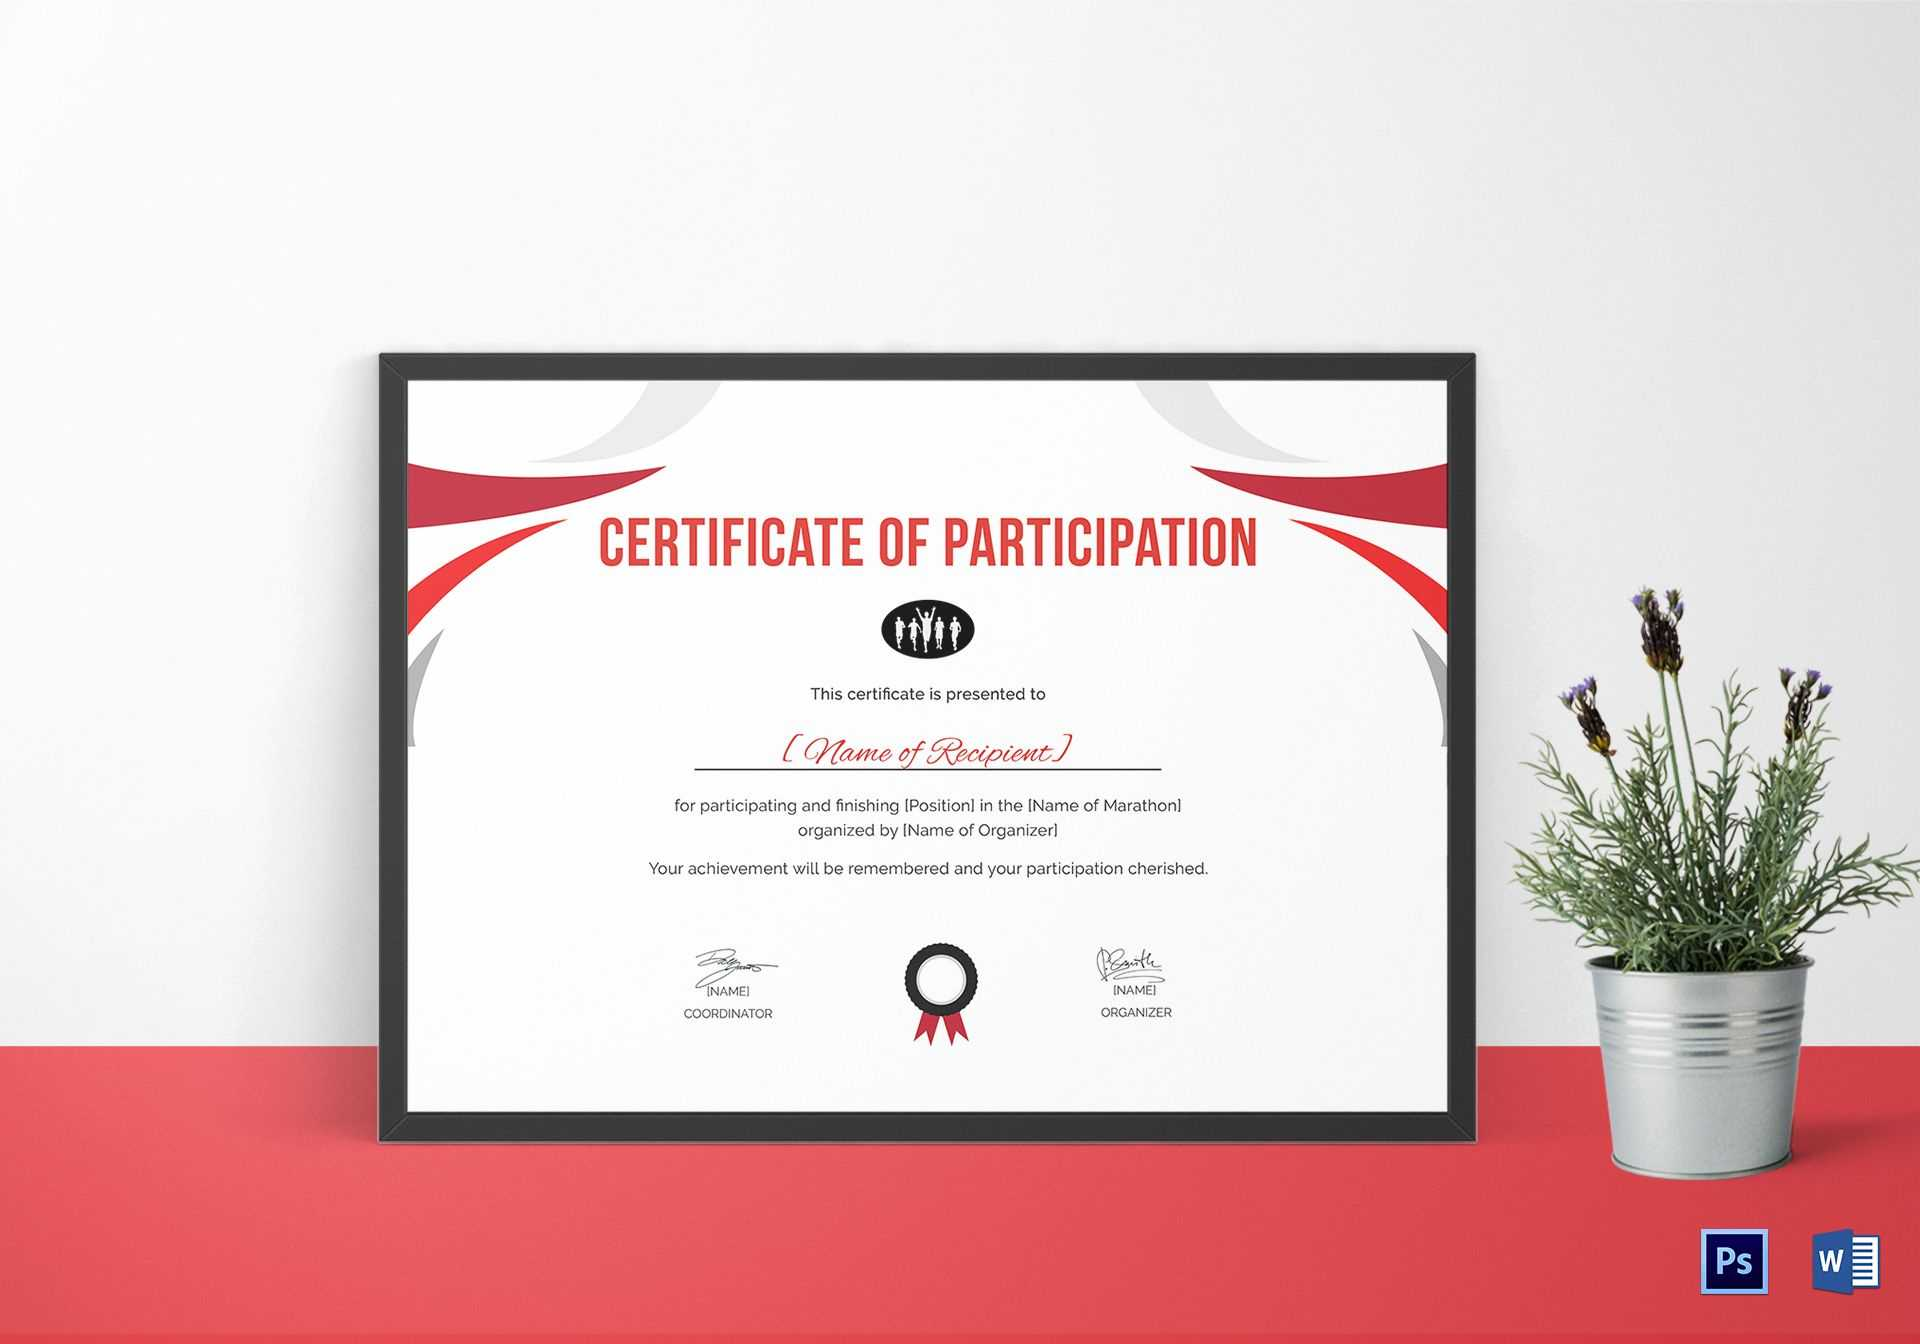 Participation Certificate For Running Template Inside Running Certificates Templates Free